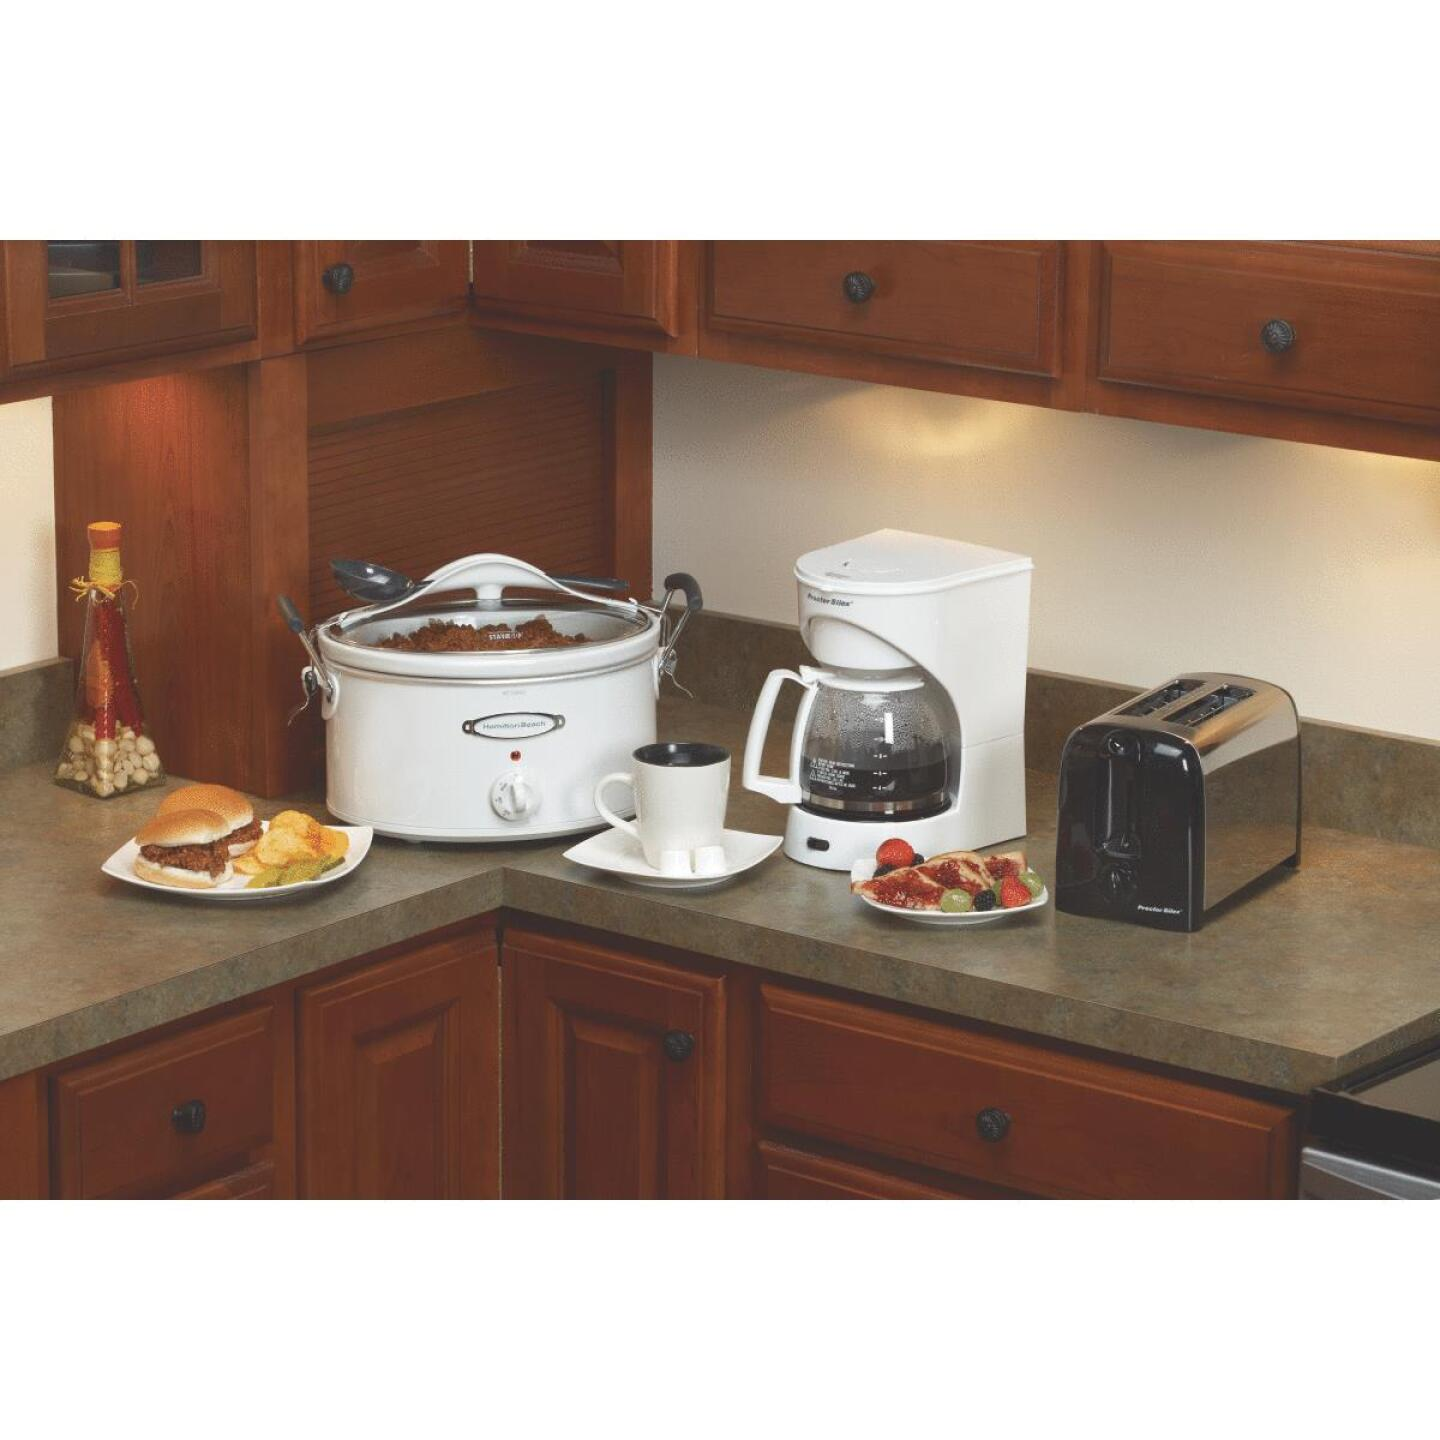 Proctor-Silex 12 Cup White Coffee Maker Image 6